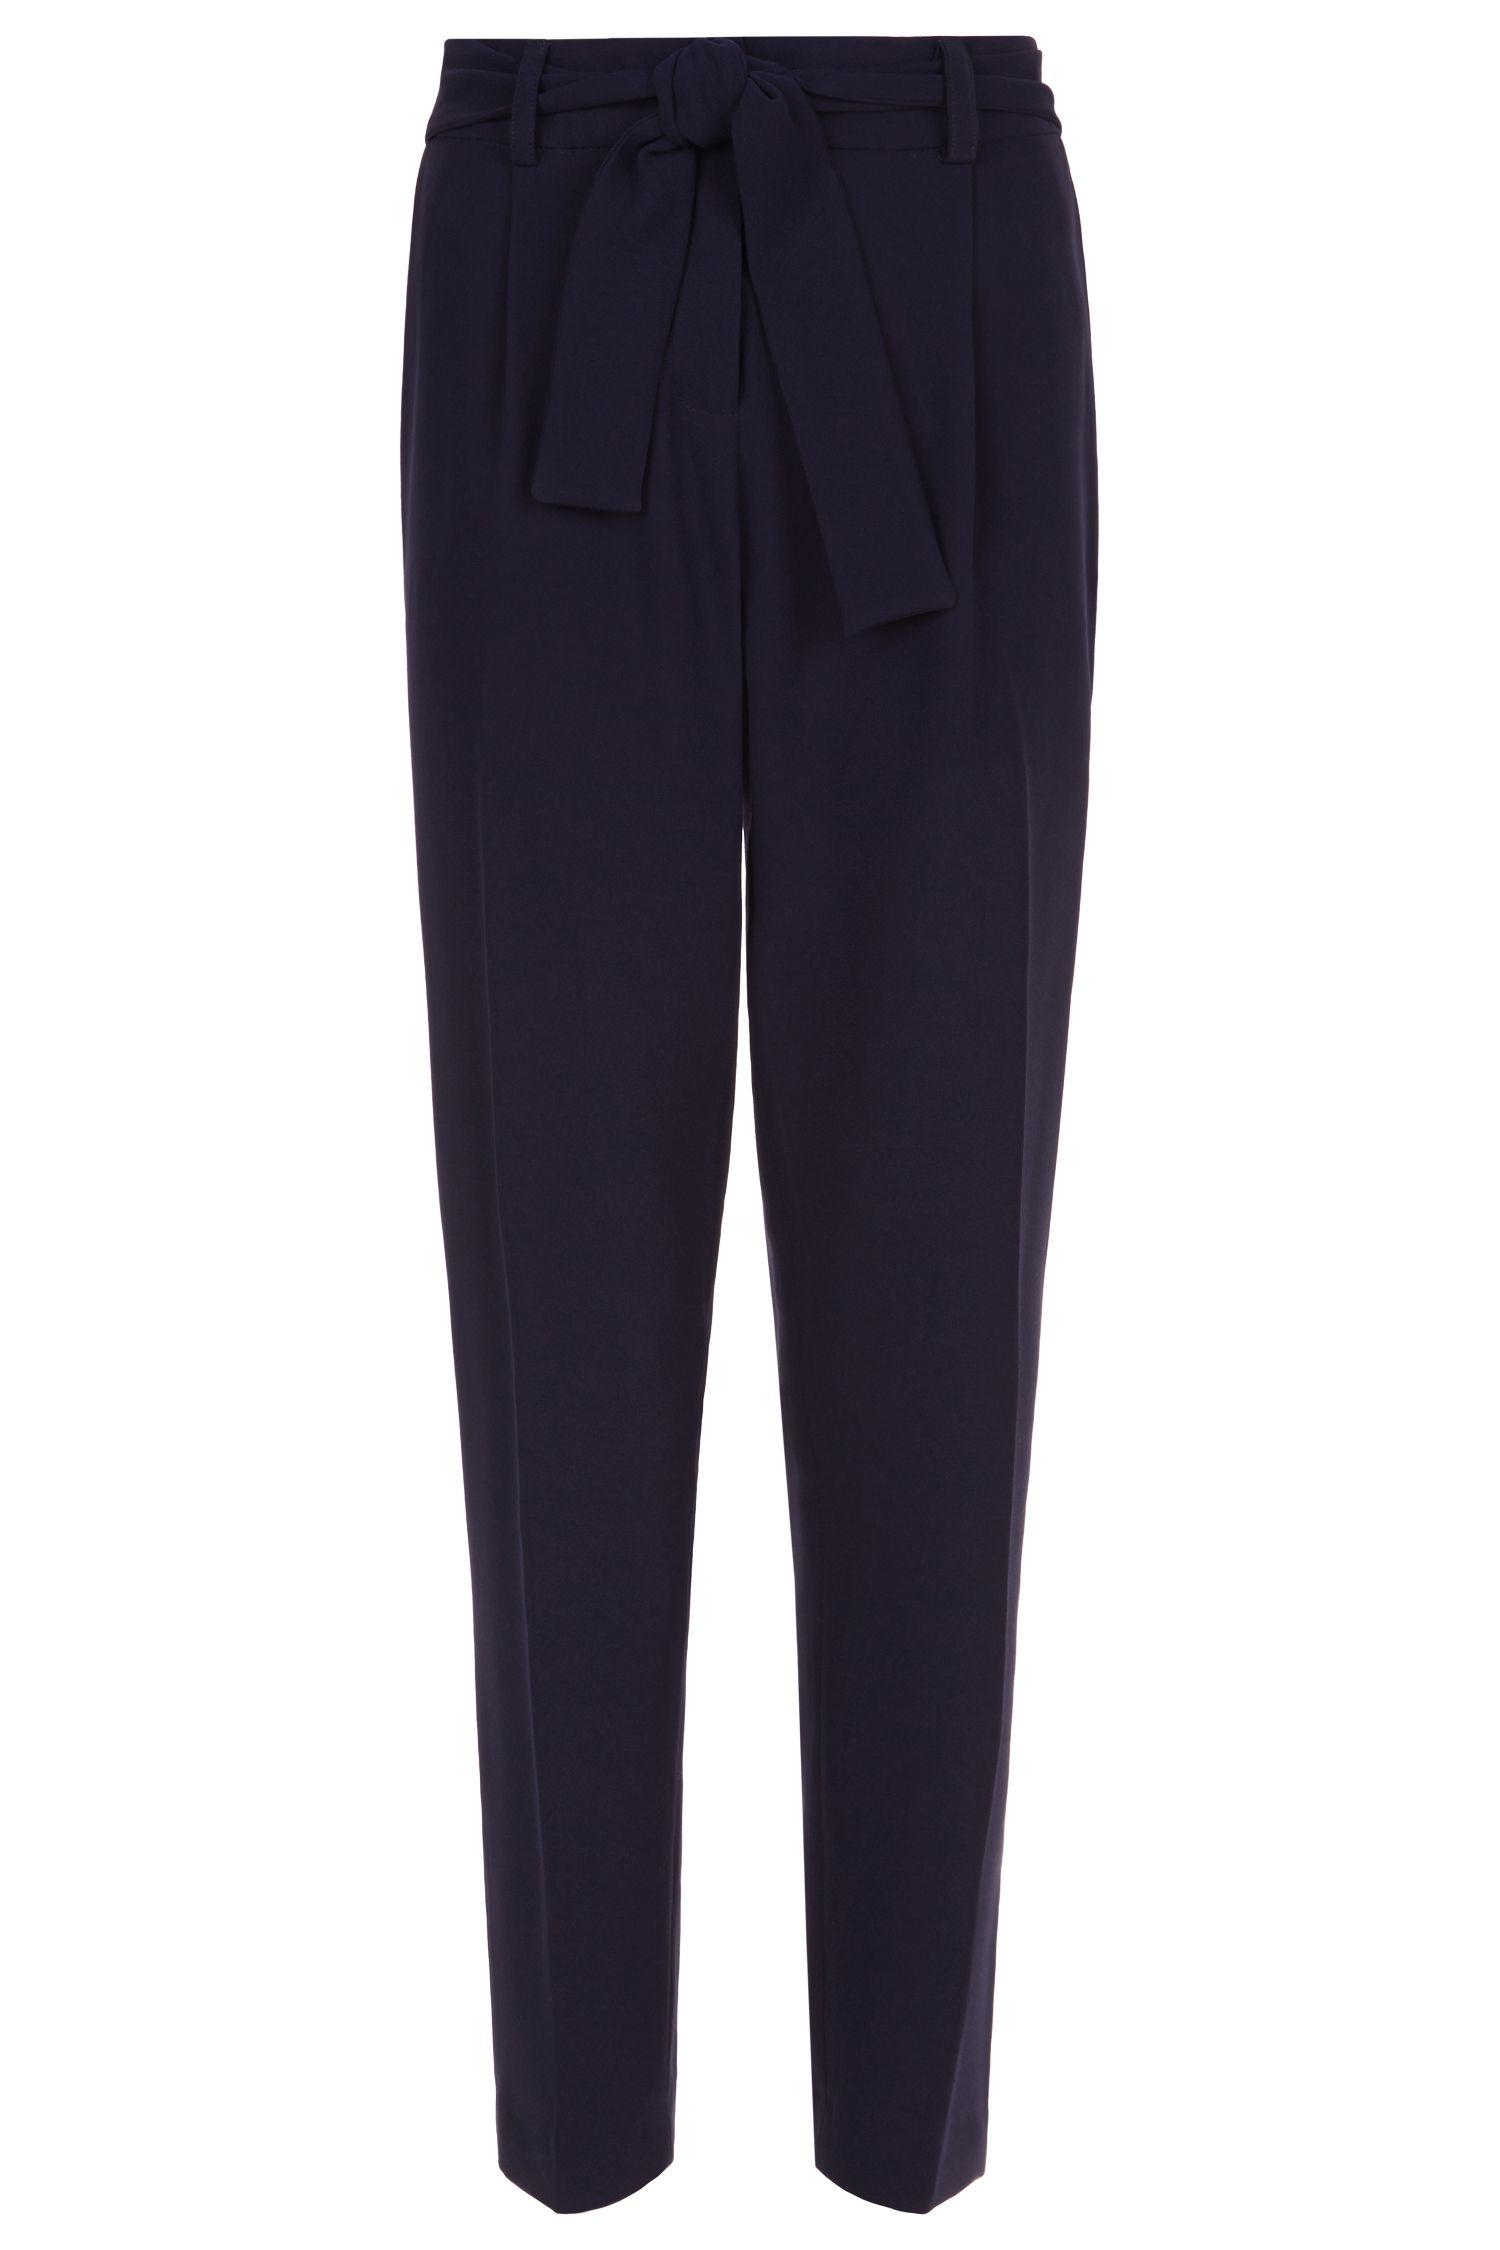 Fenn Wright Manson Gemini Trouser, Blue